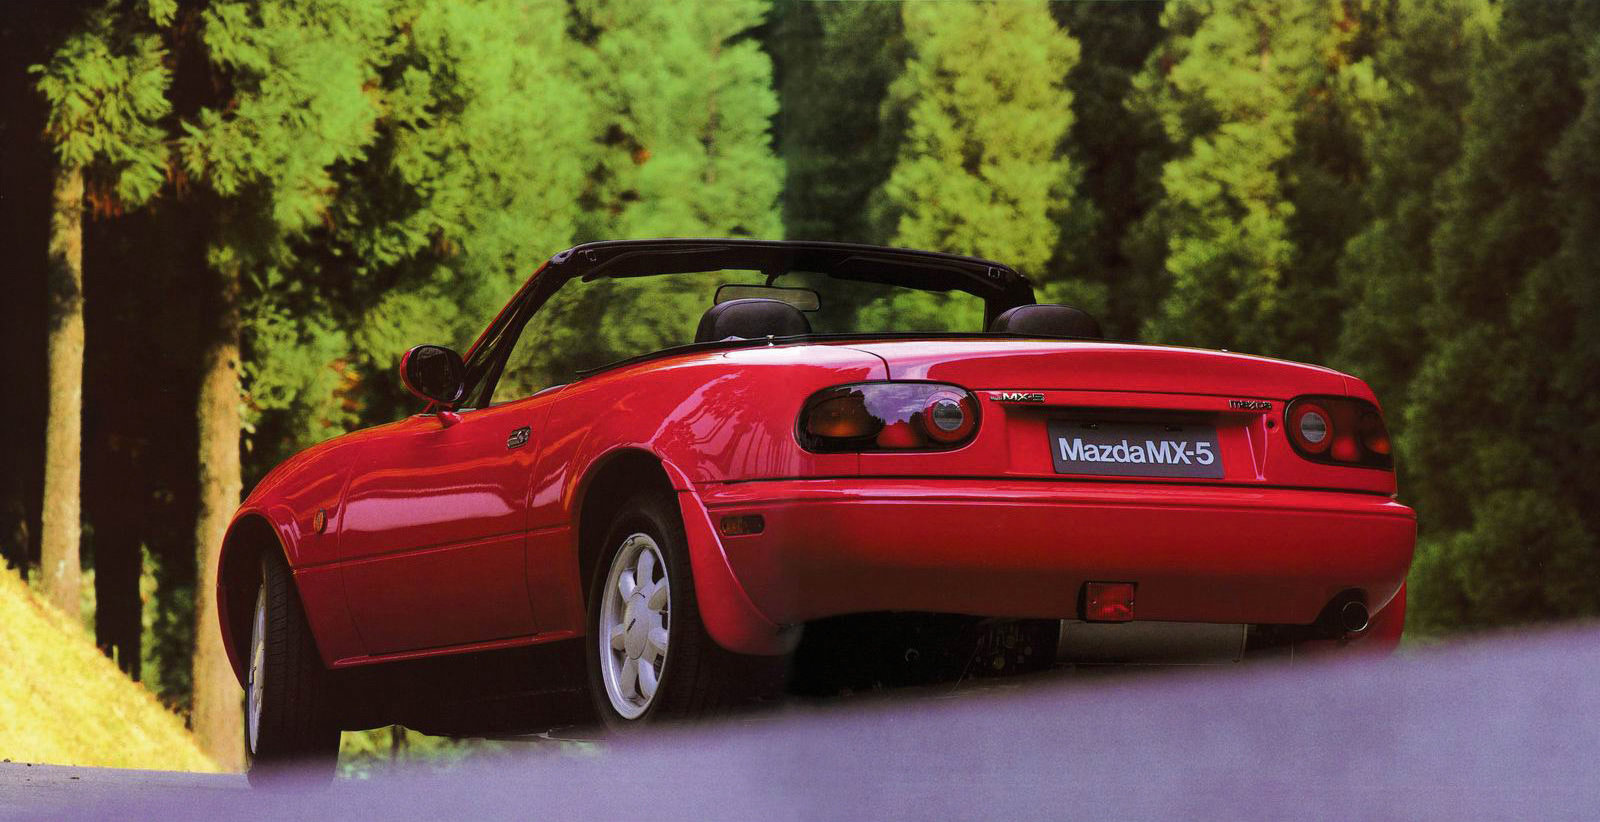 1990 Mazda MX-5 Miata rear 3/4 trees